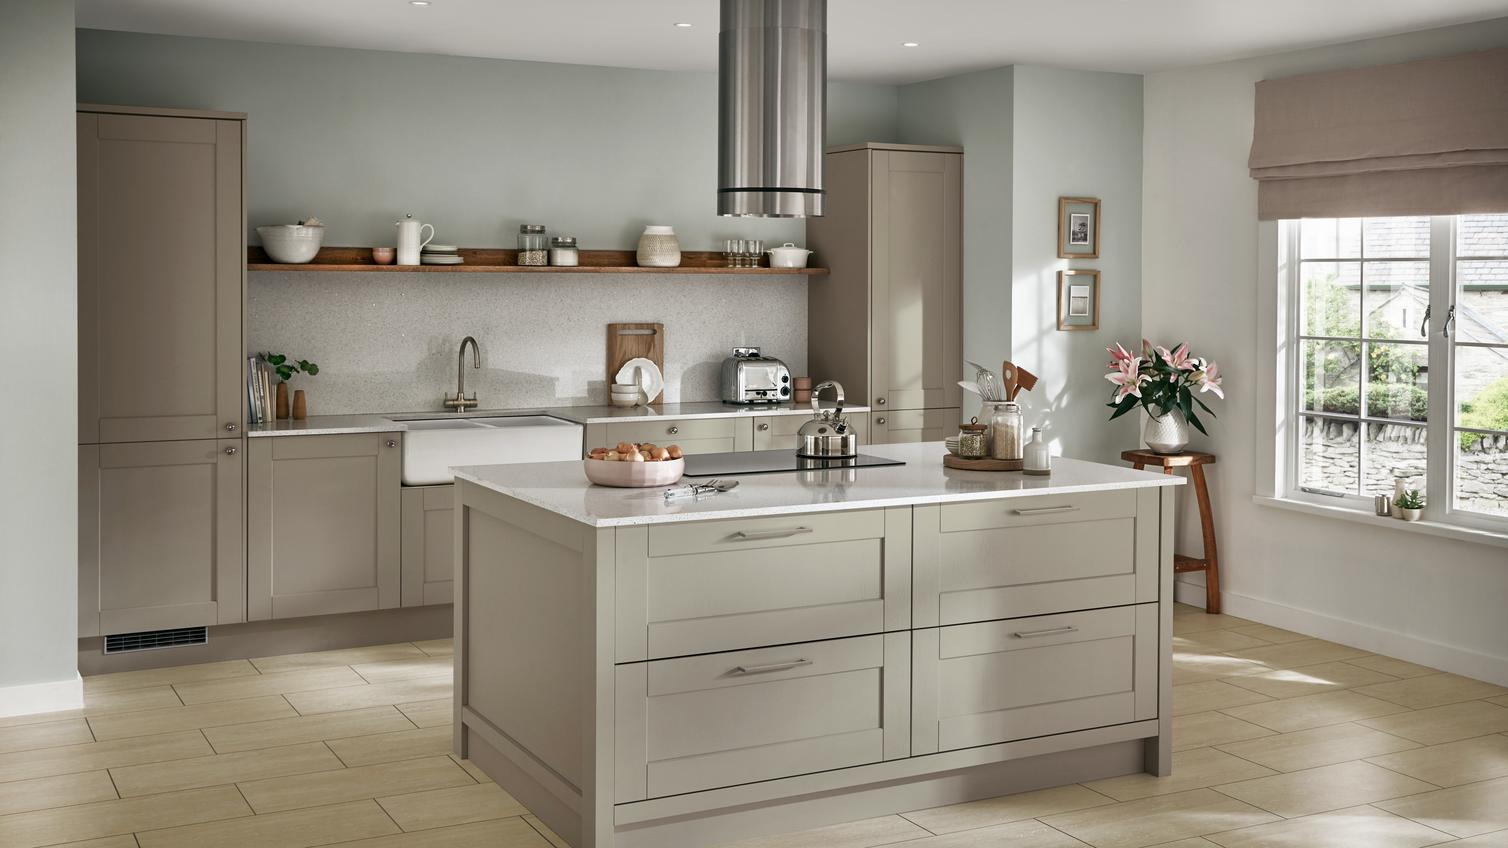 Fairford Sage Green Kitchen Fitted Kitchens Howdens